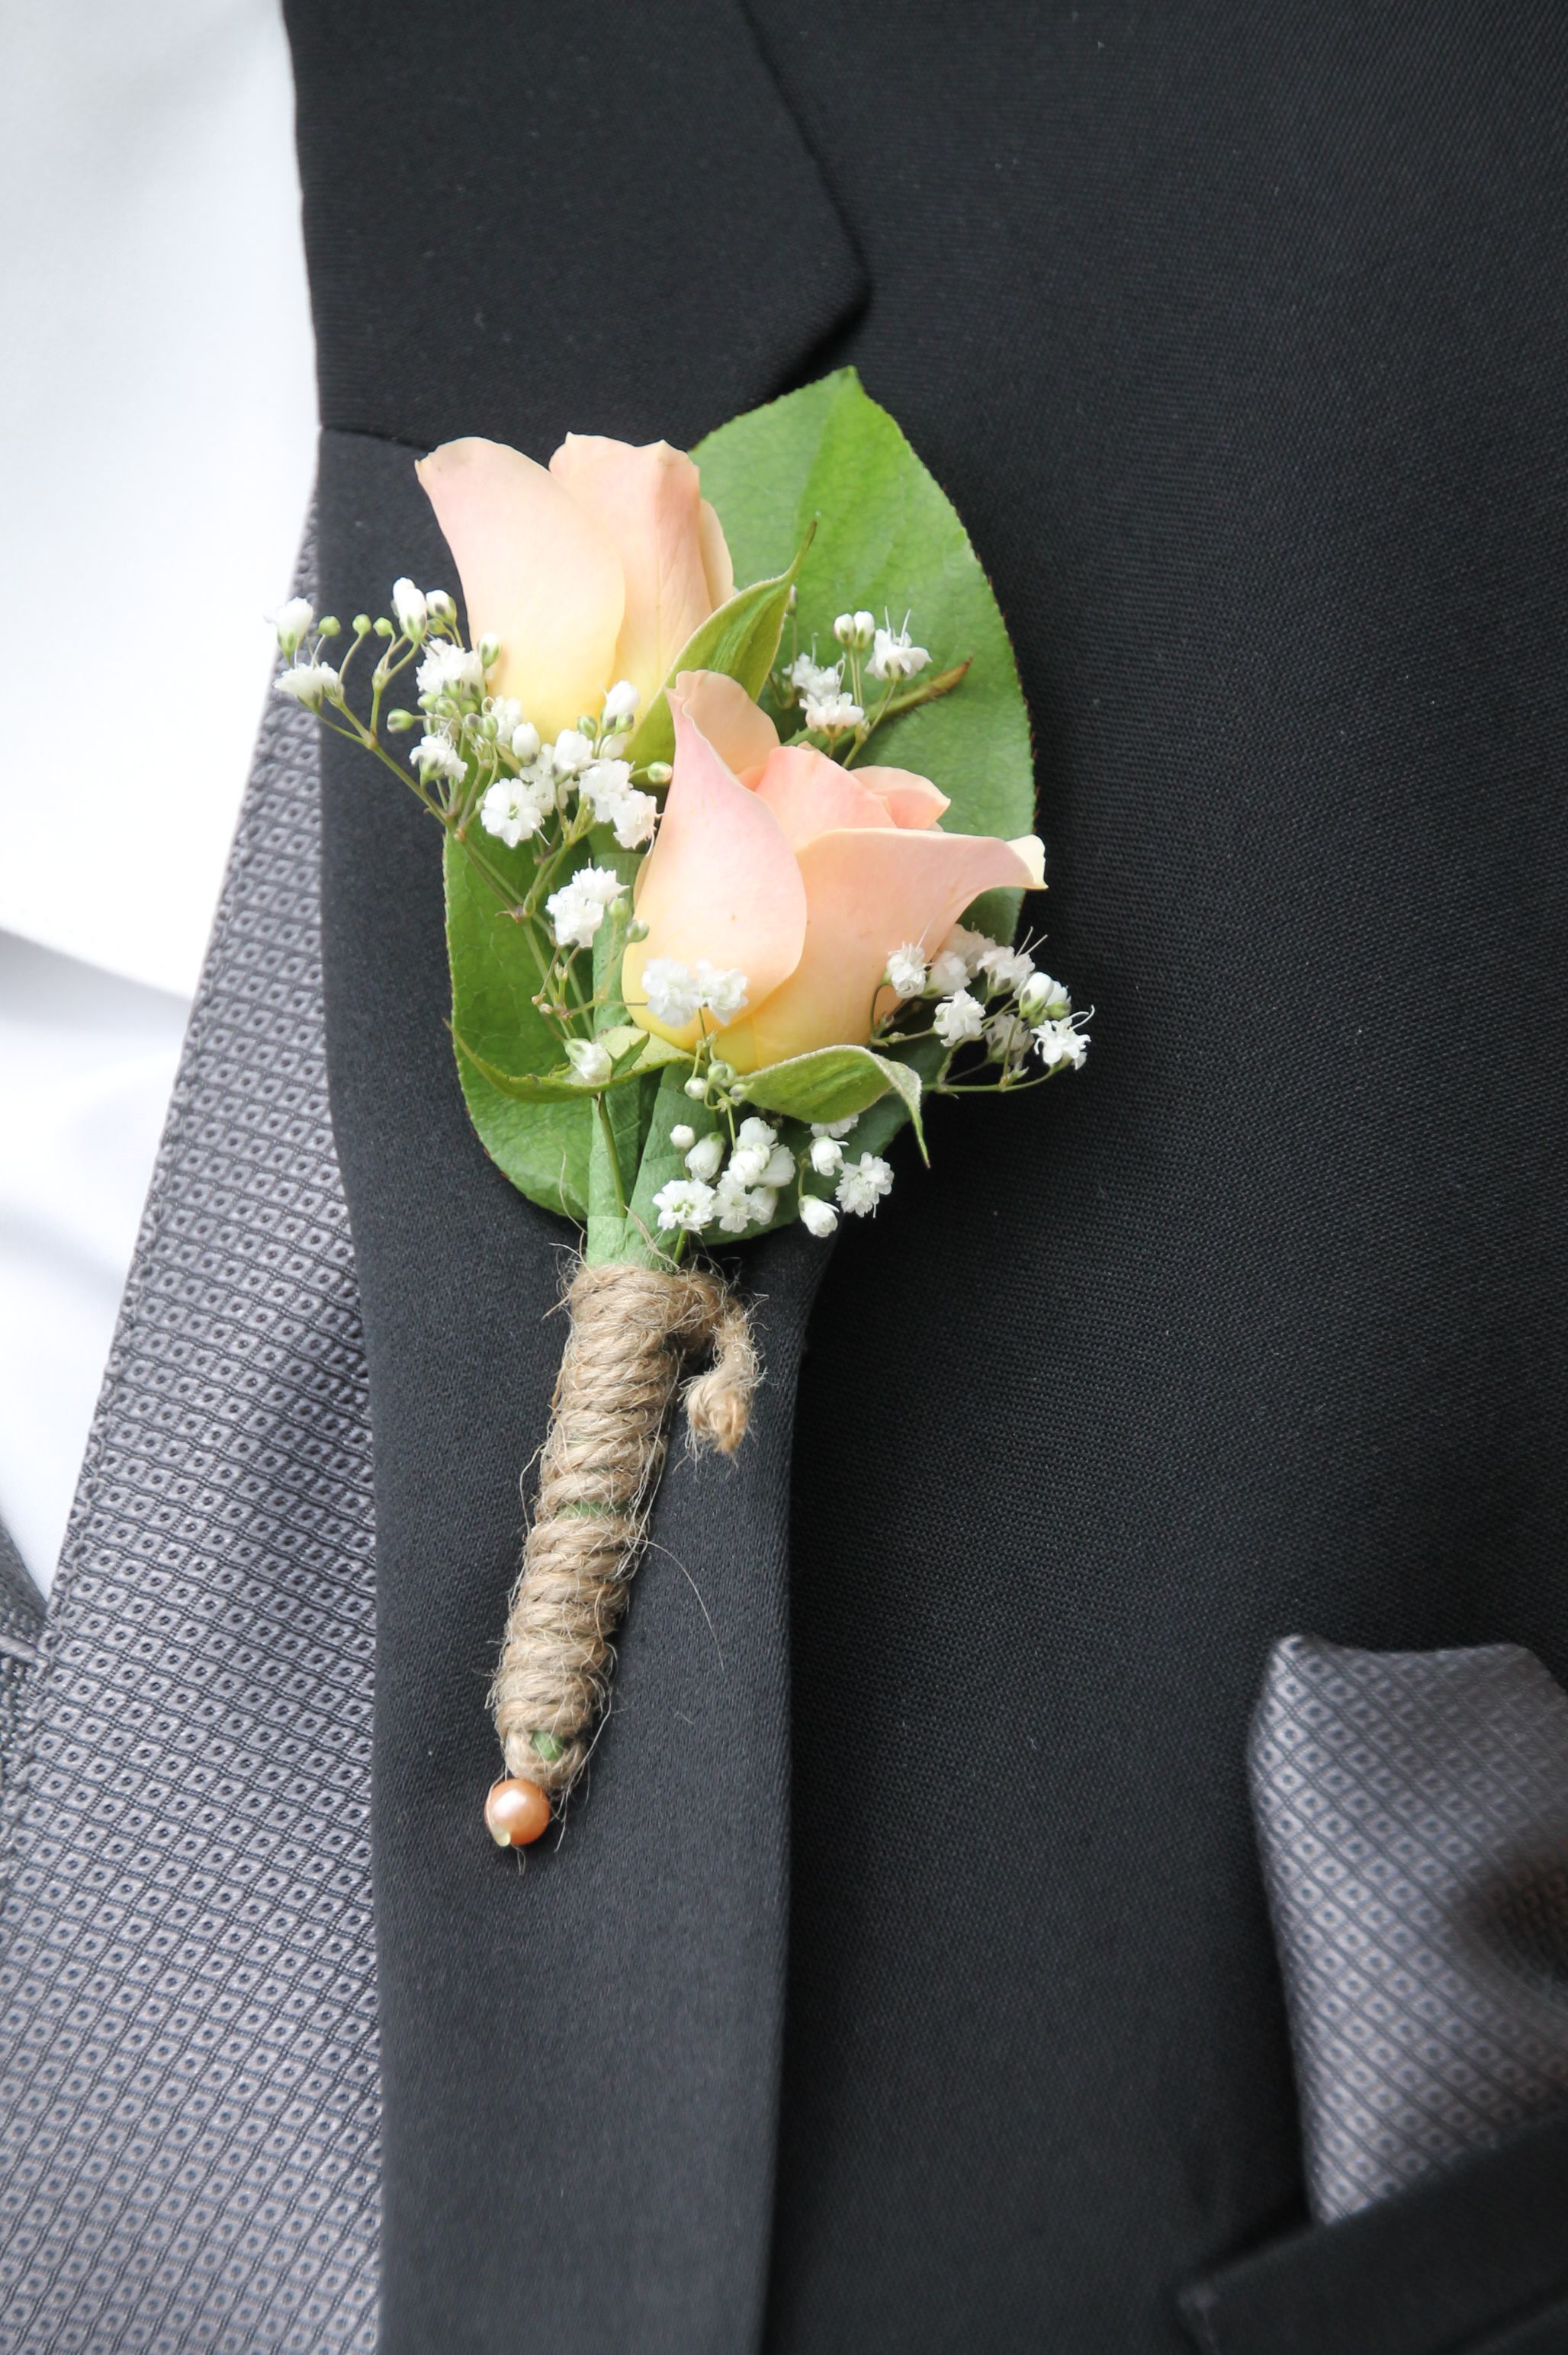 Garden Rose Boutonniere boutonniere with peach/coral garden roses, wrapped with twine to